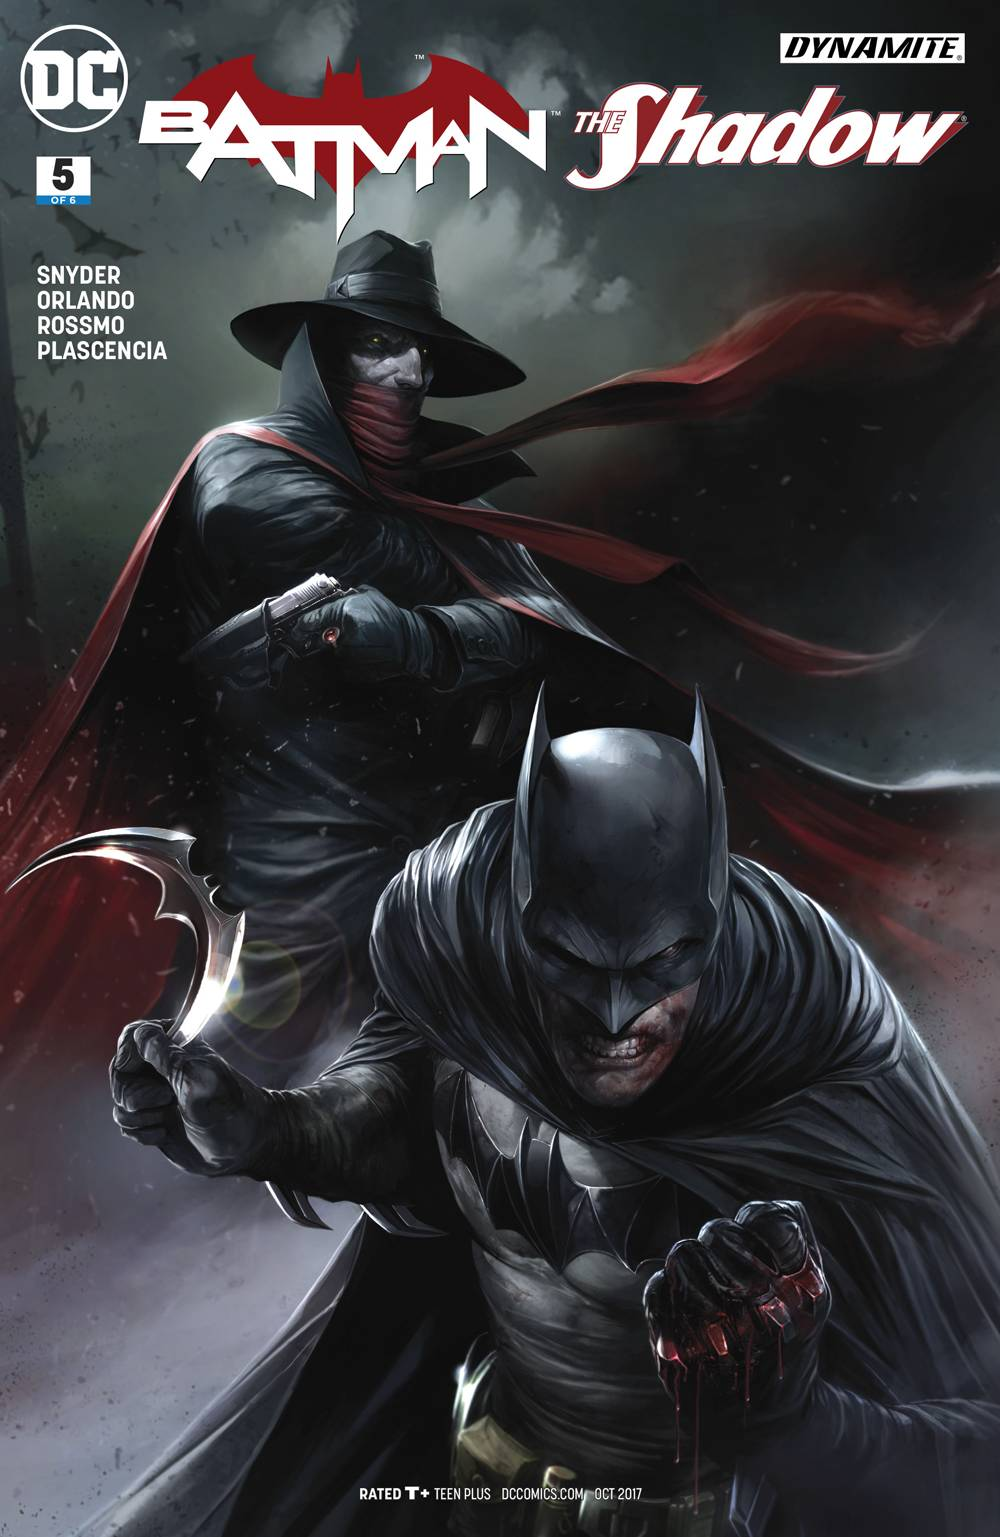 BATMAN THE SHADOW 5 of 6 MATTINA VAR ED.jpg